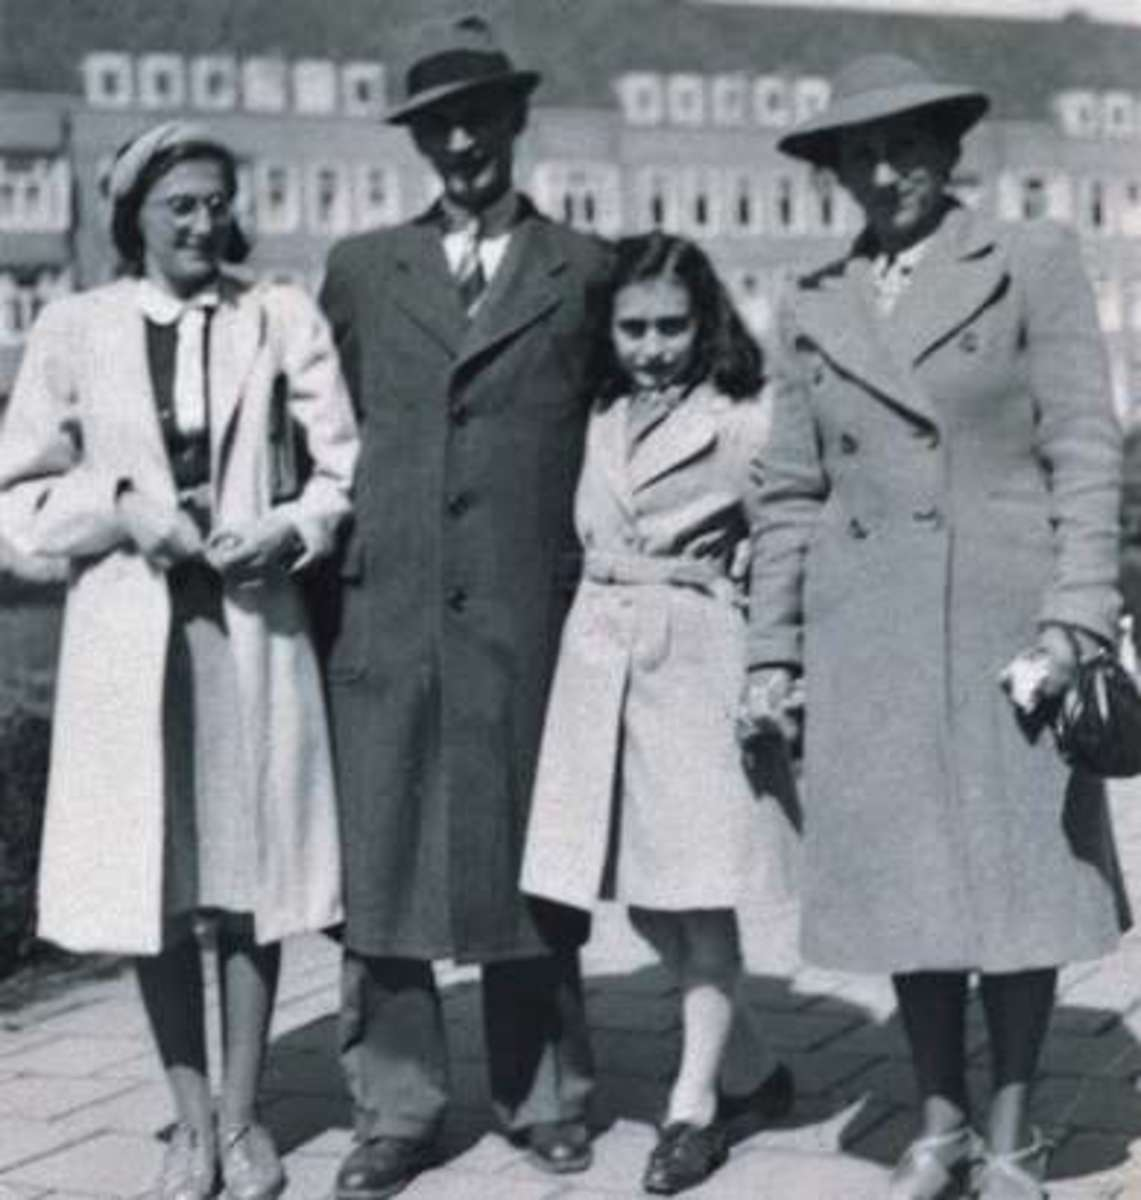 The Frank family, Margot, Otto, Anne, and Edith, shortly before going into hiding.